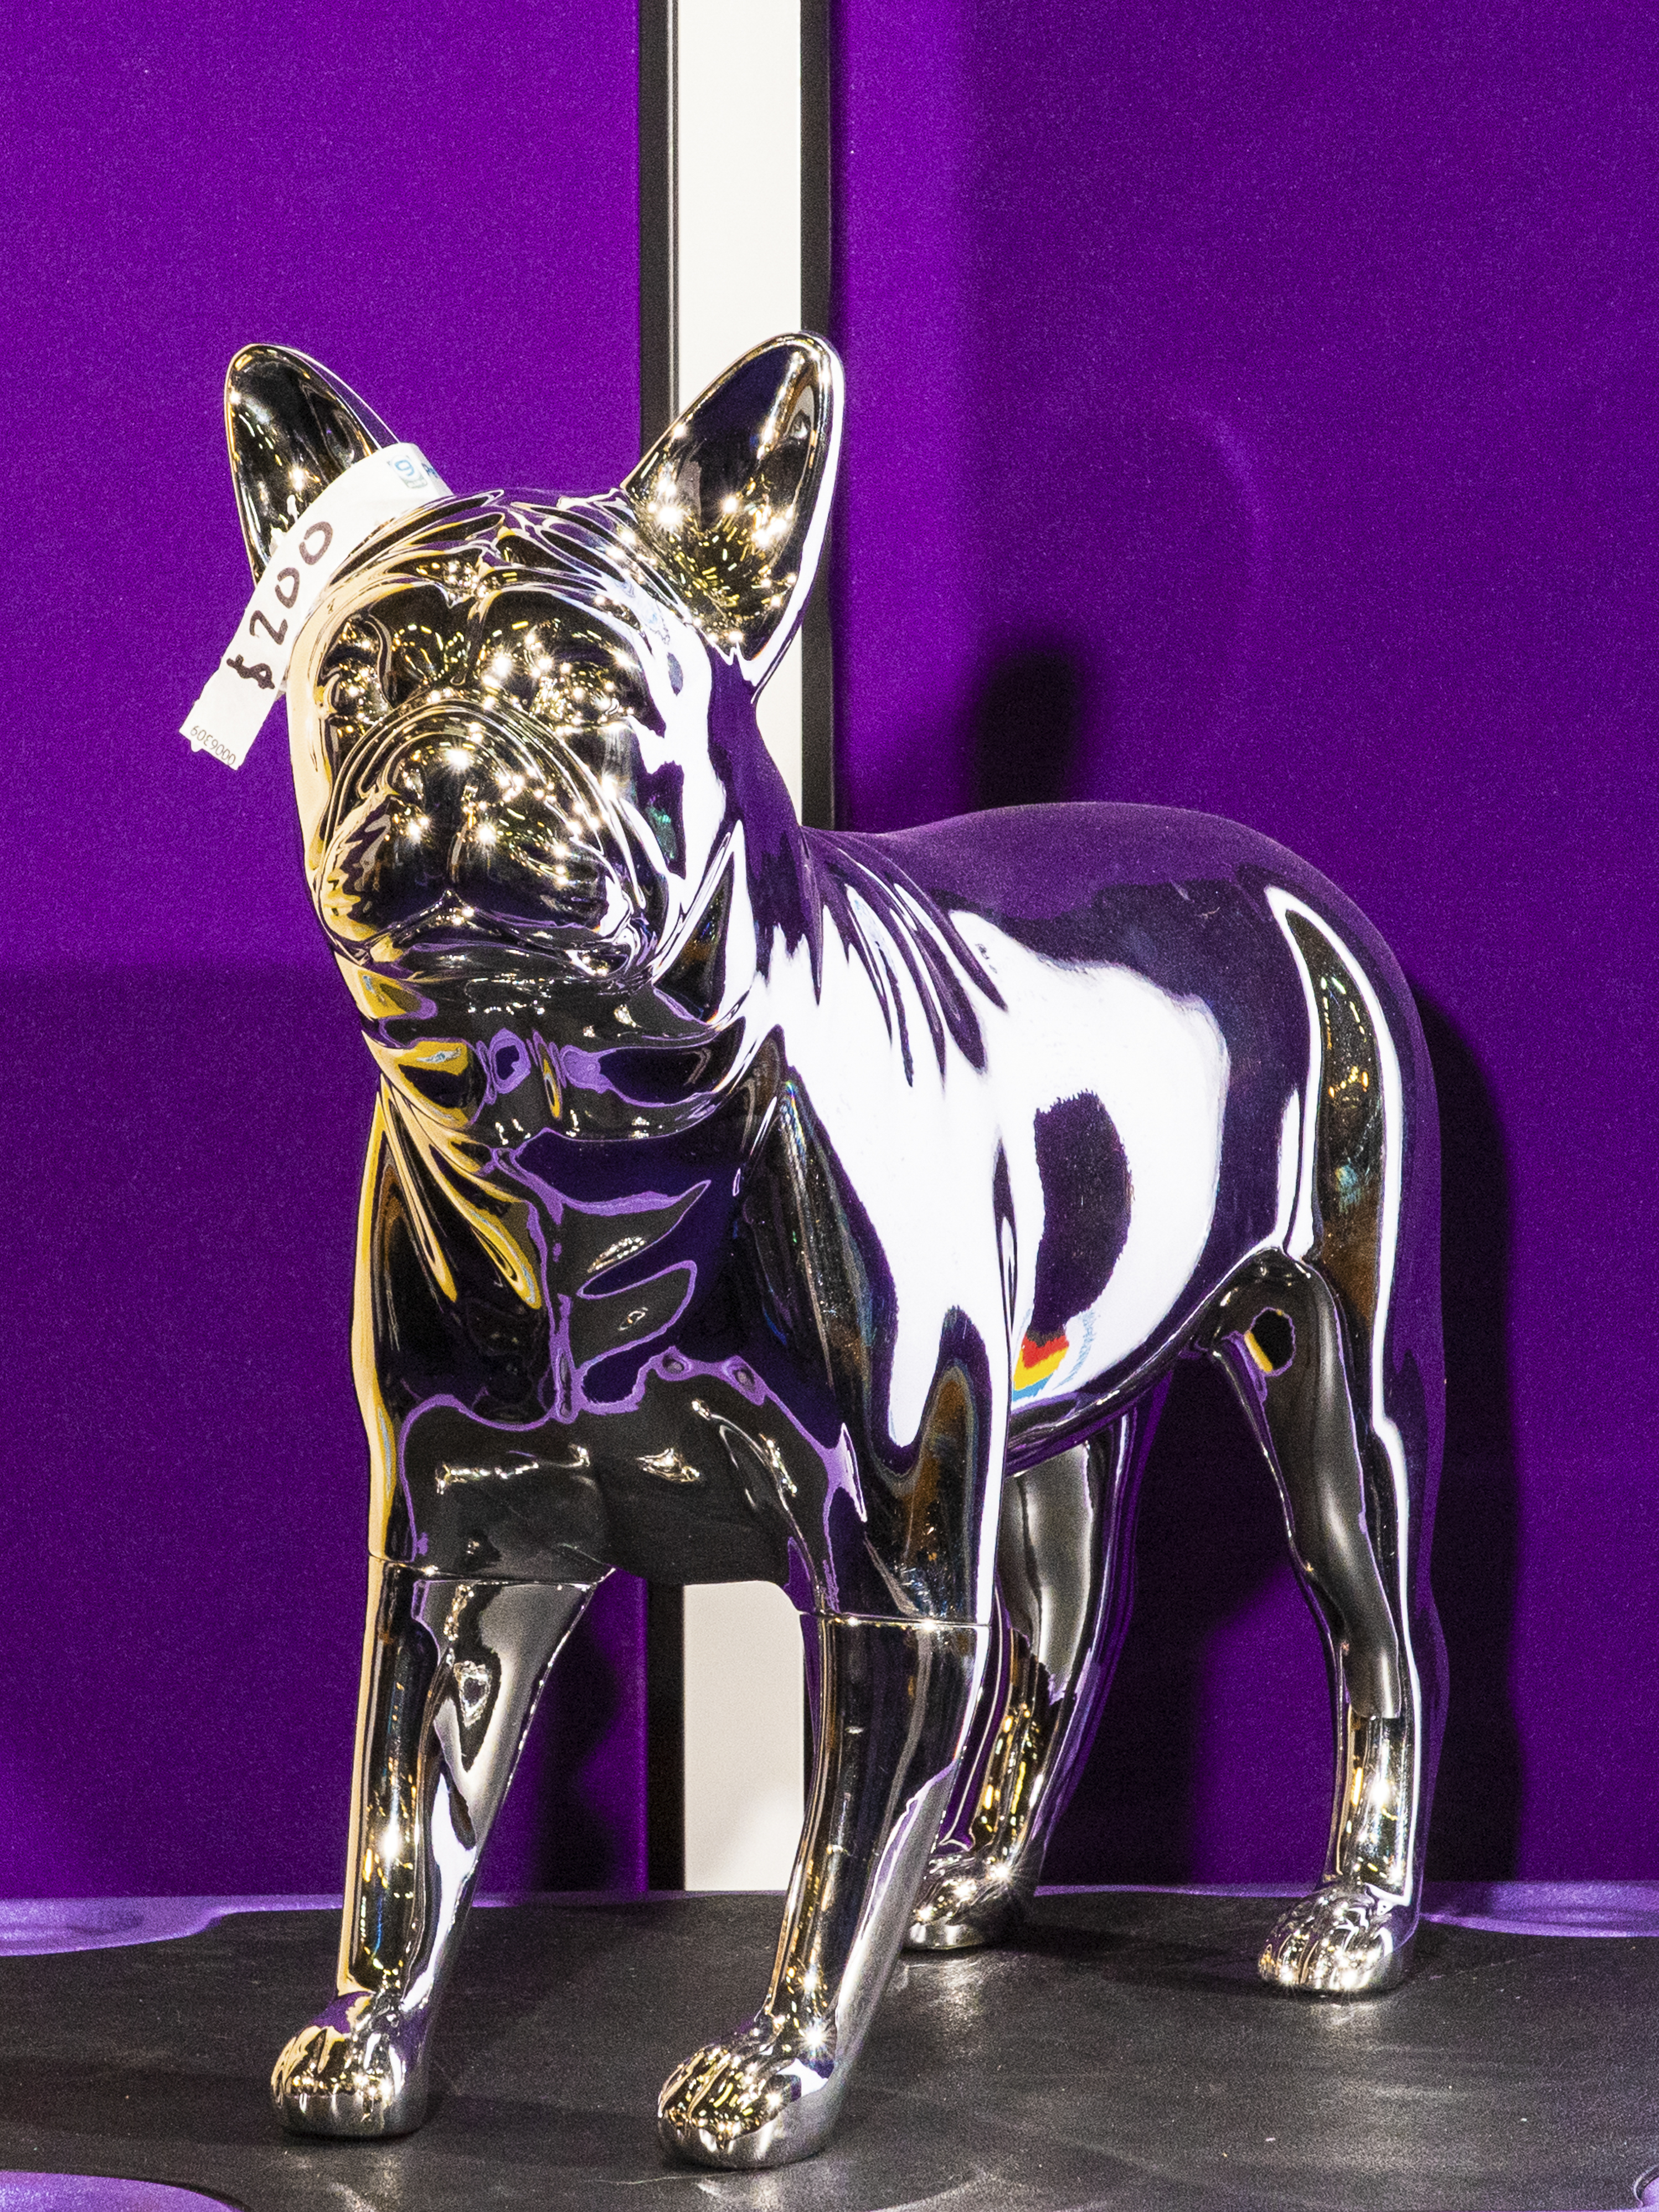 A sculpture for sale at the Westminster Dog Show, New York City, on Feb 11, 2020.